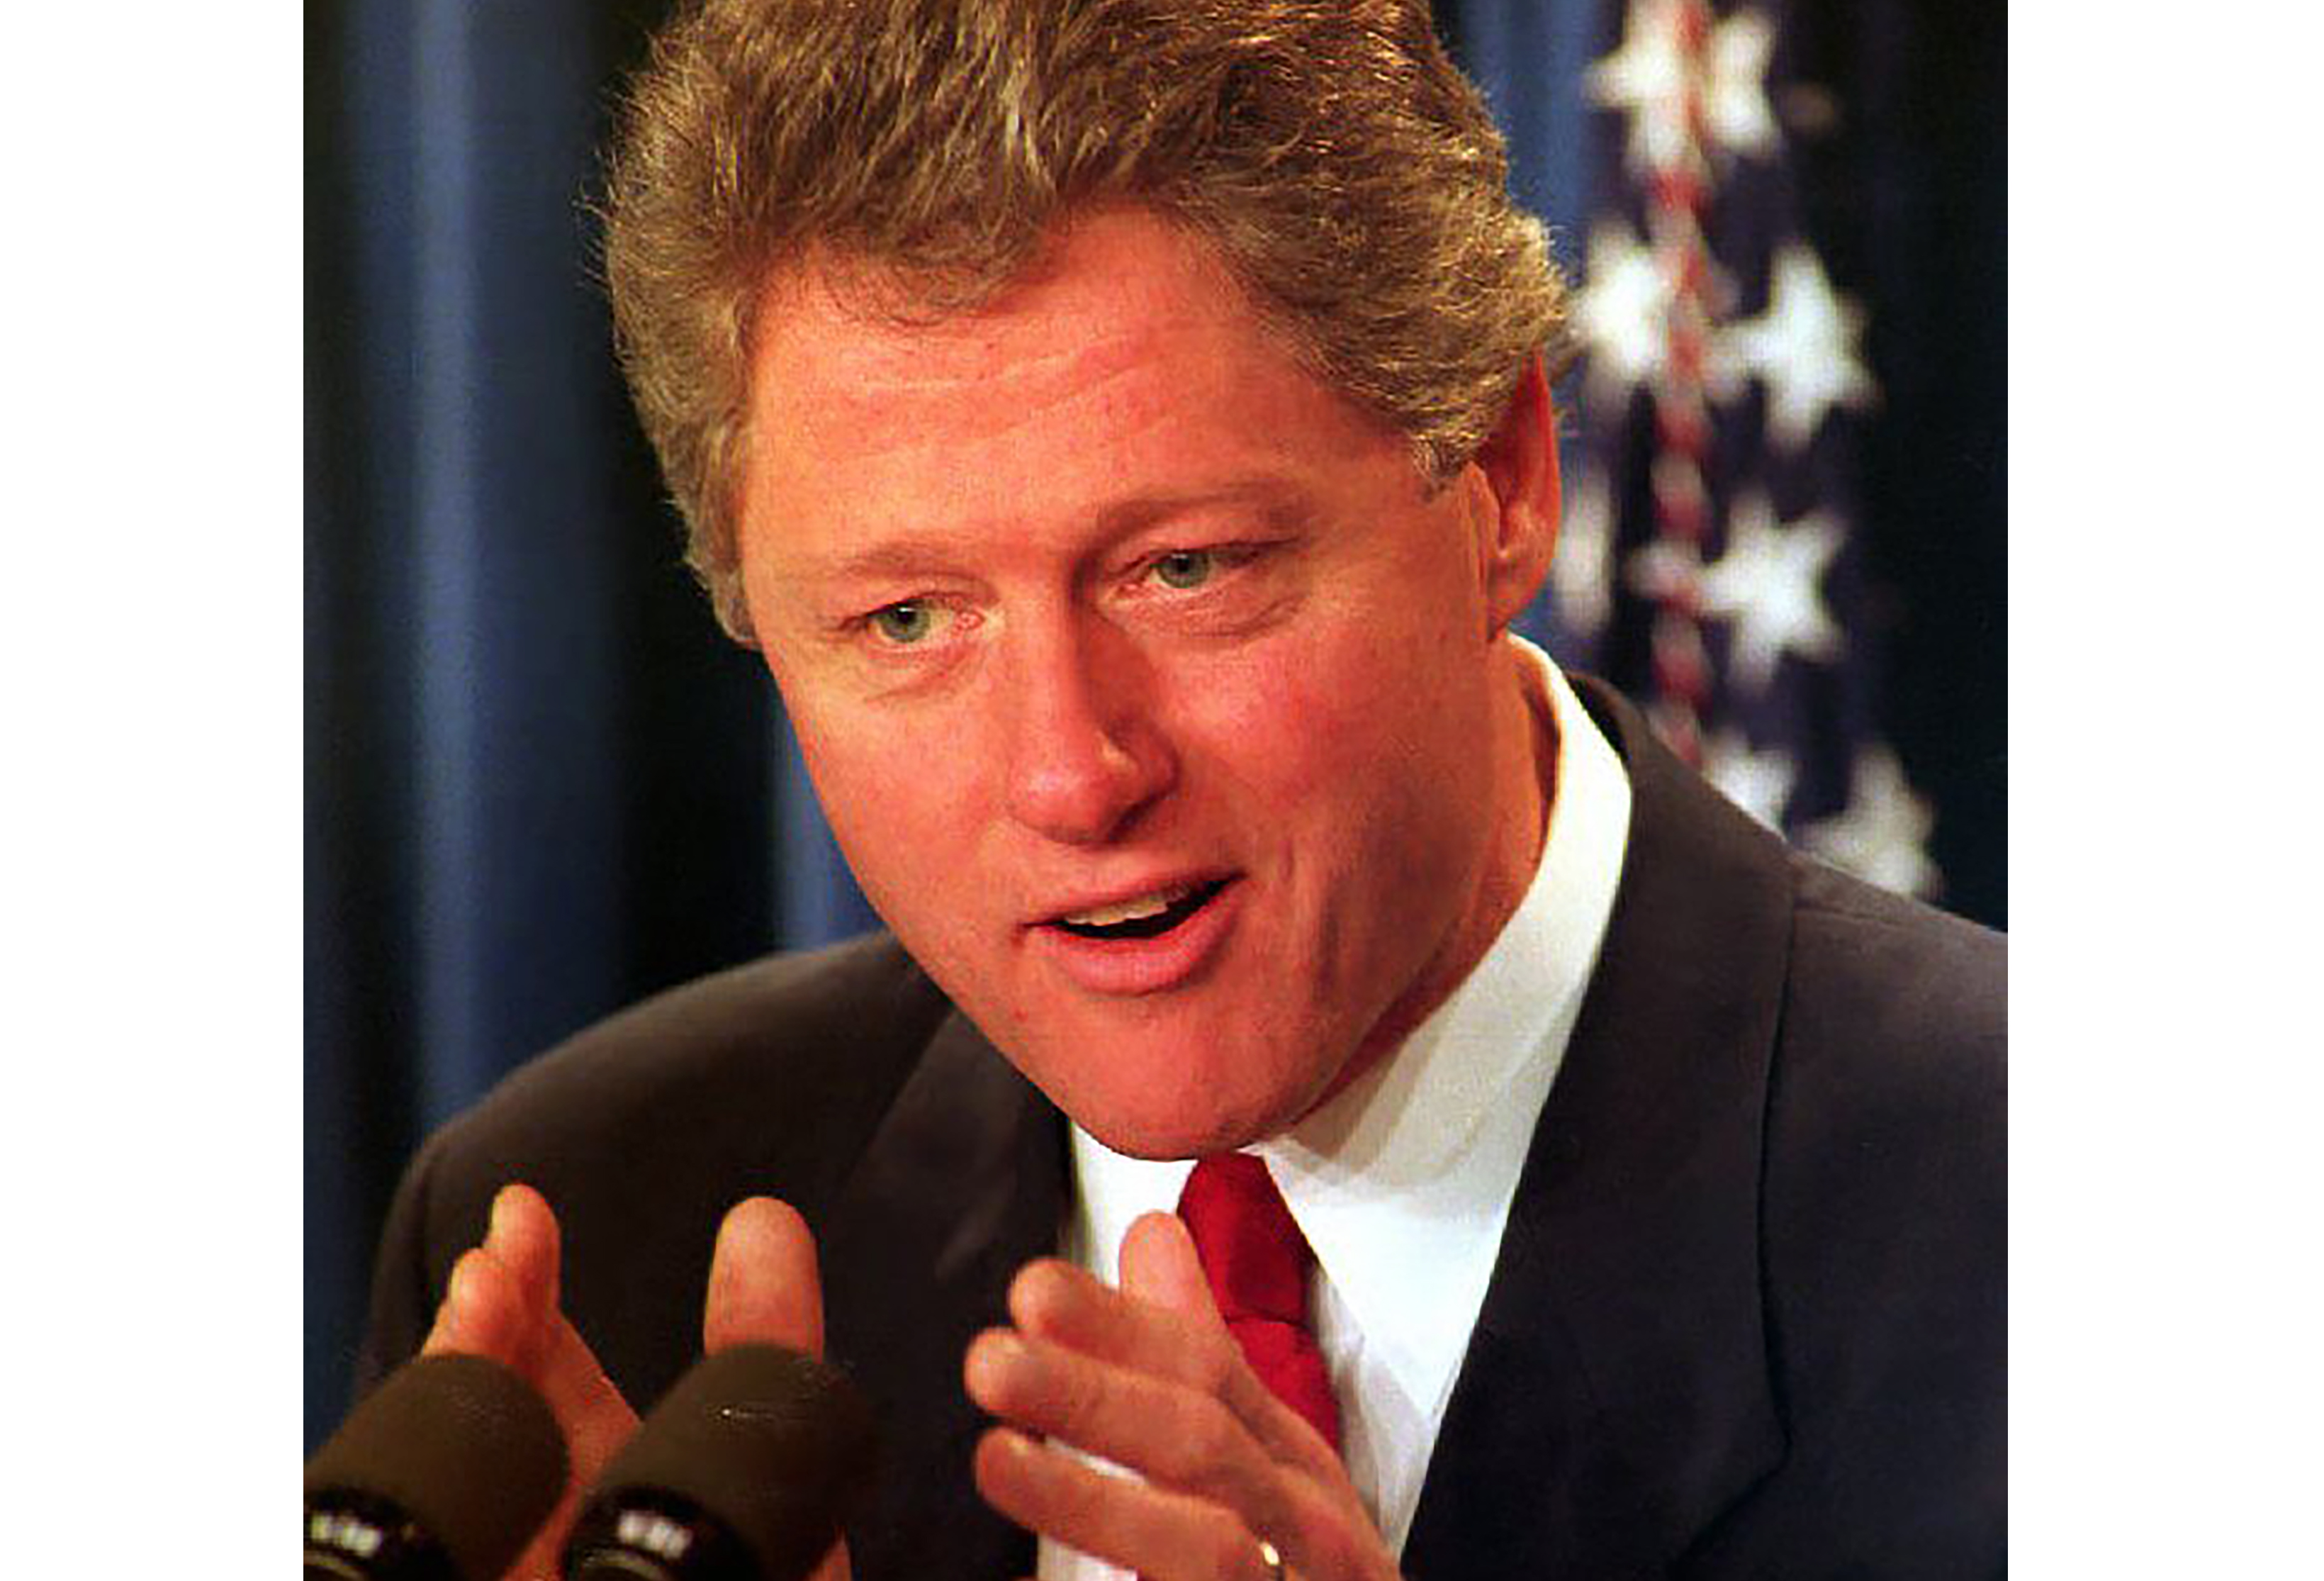 U.S. President Bill Clinton addresses the nation about his decision to lift a 50-year ban on homosexuals in the military on January 29, 1993.